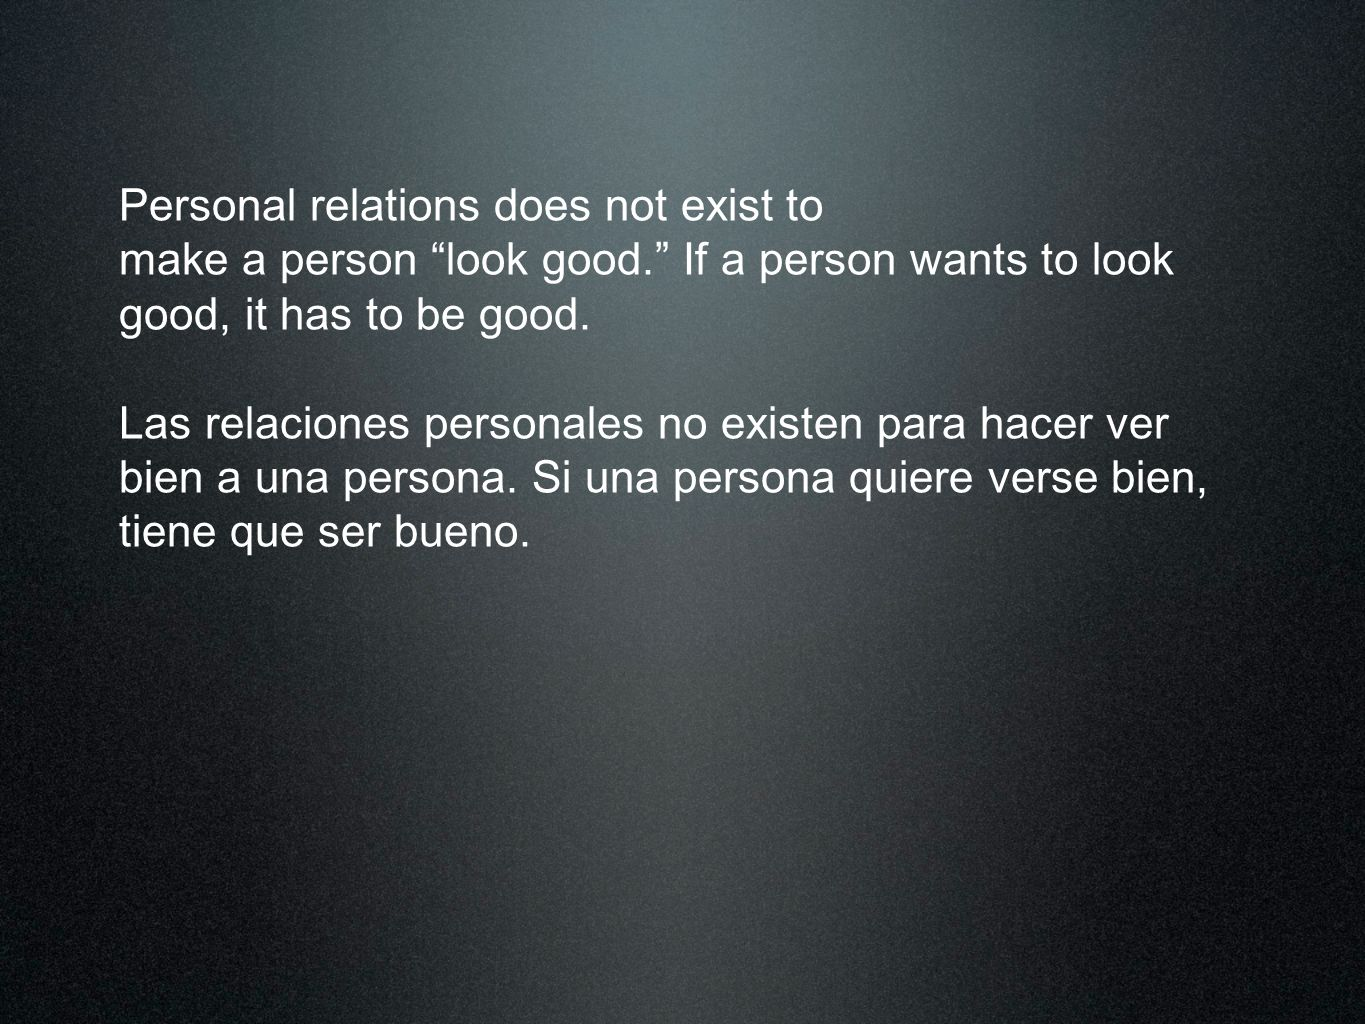 Personal relations does not exist to make a person look good.